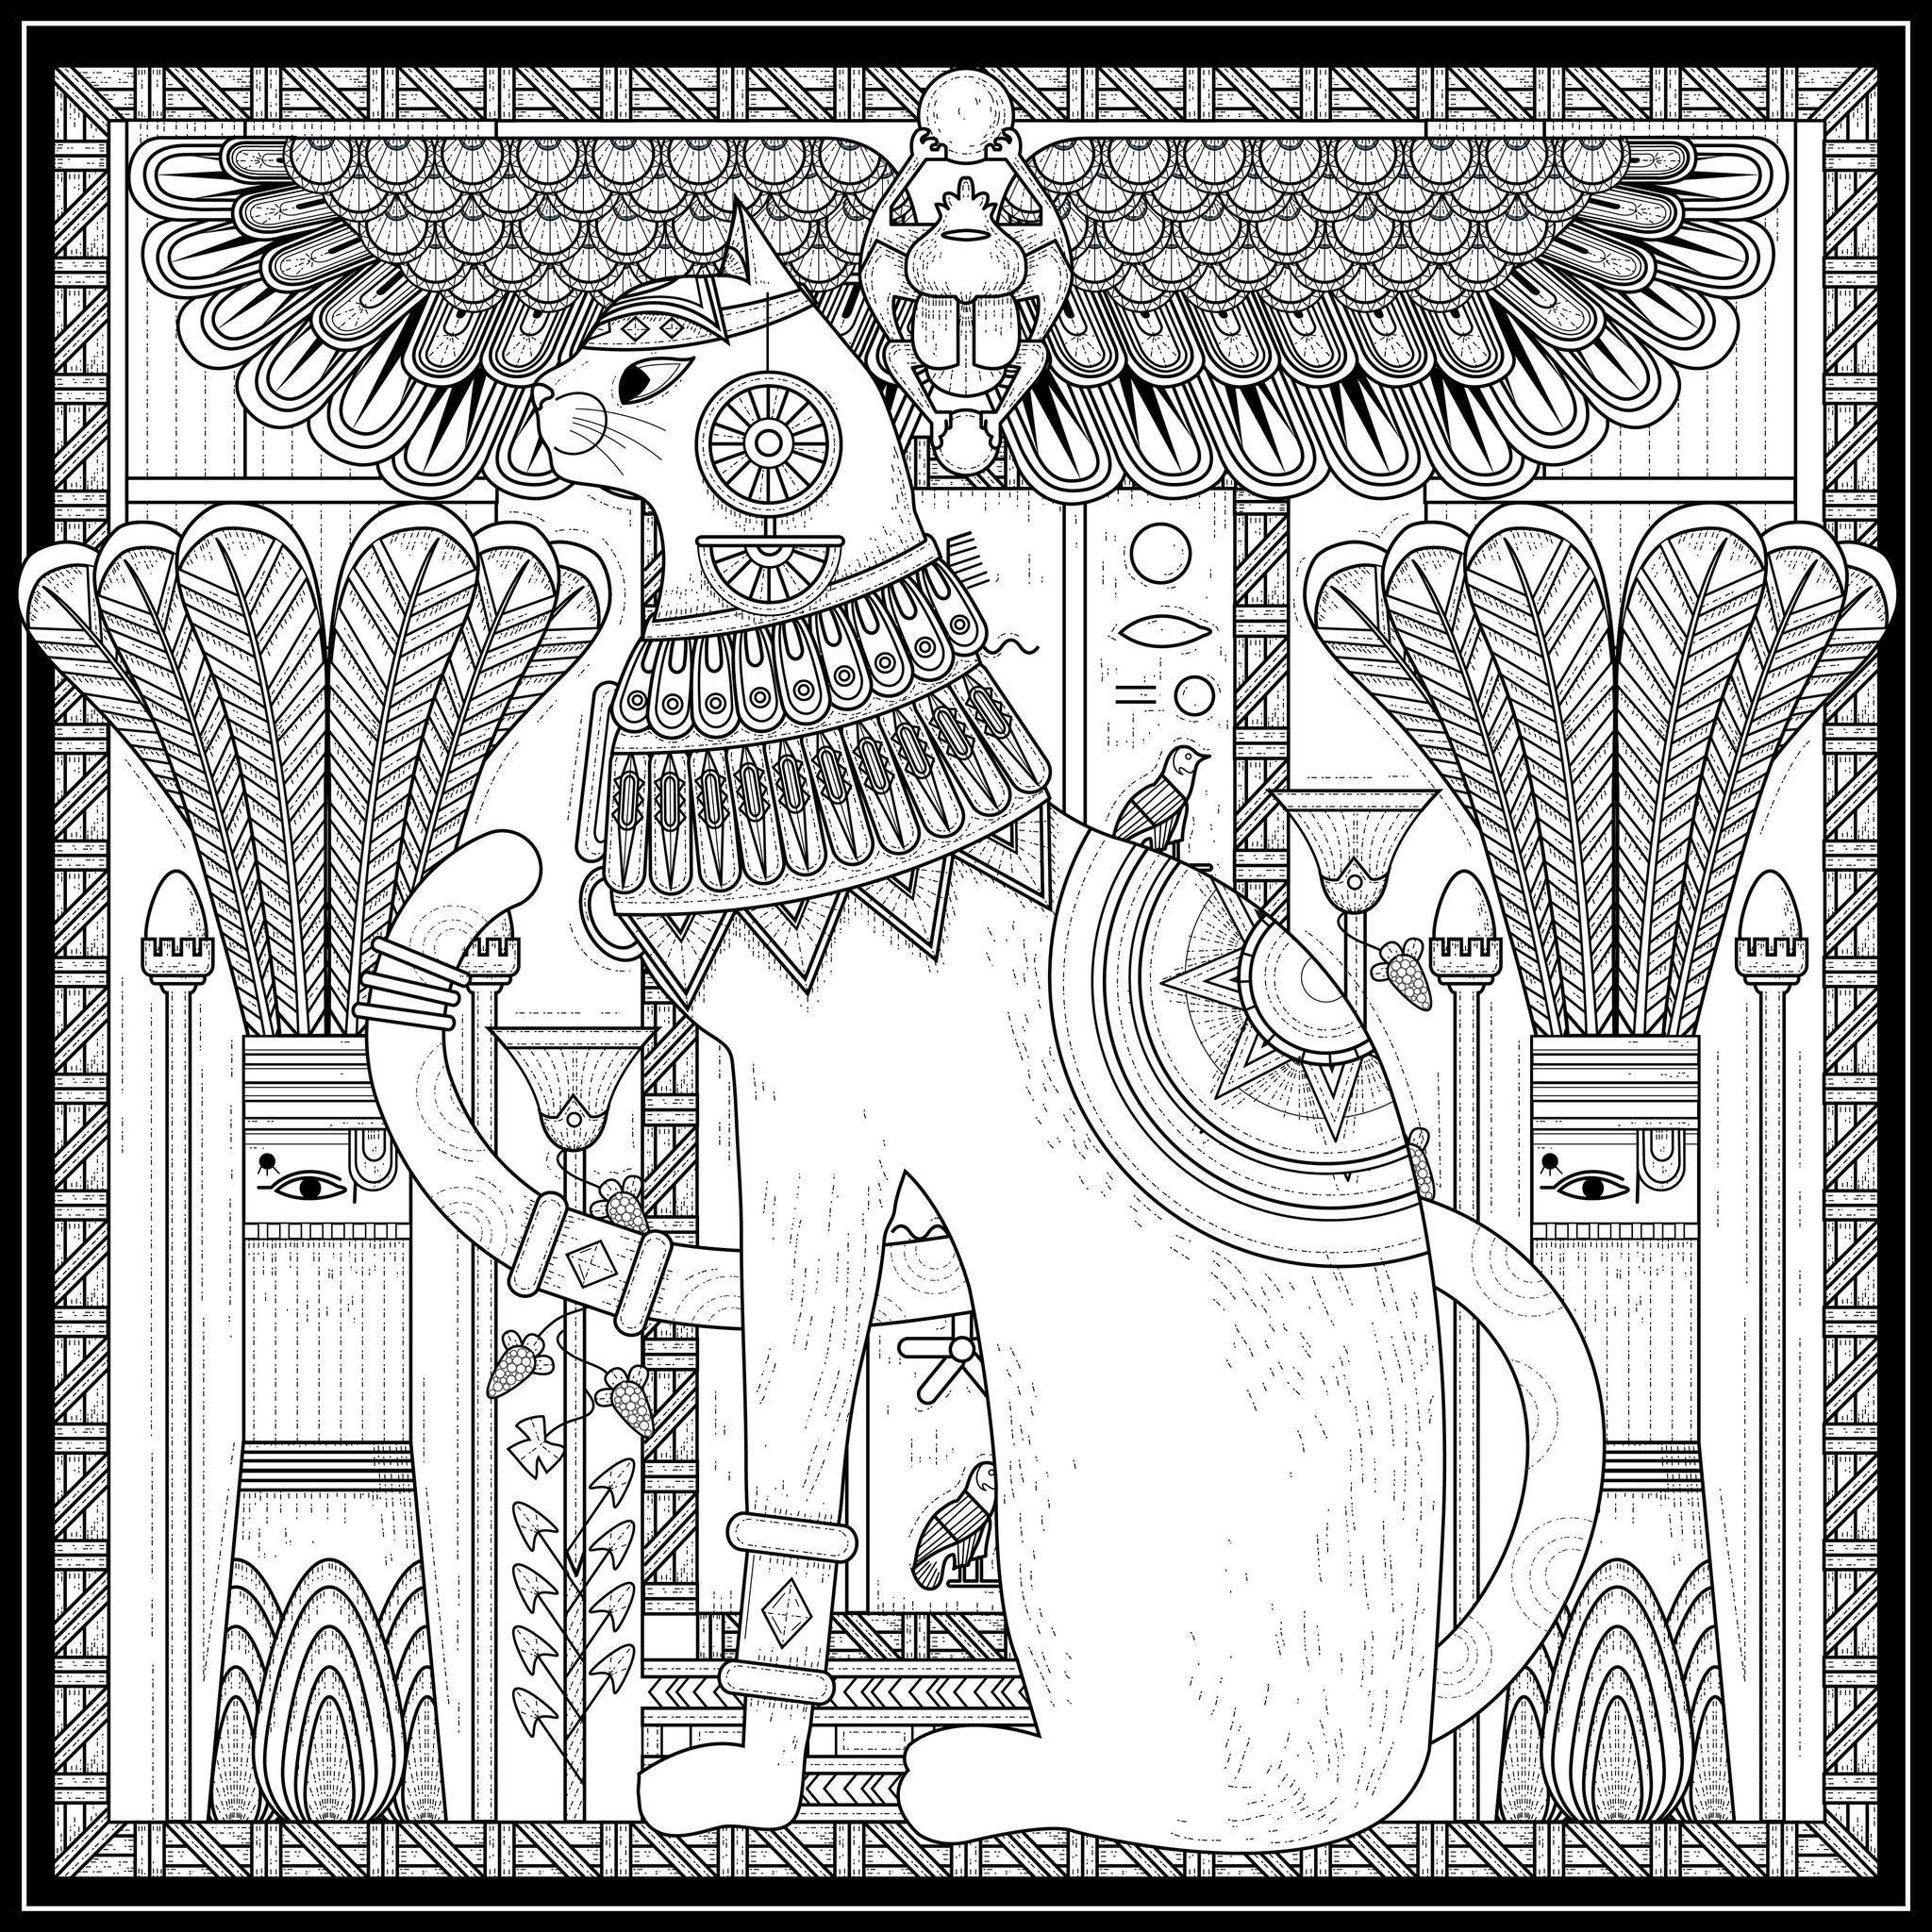 2048x2048 Egypt Cat Egyptian Style And Symbols By Kchung Egypt